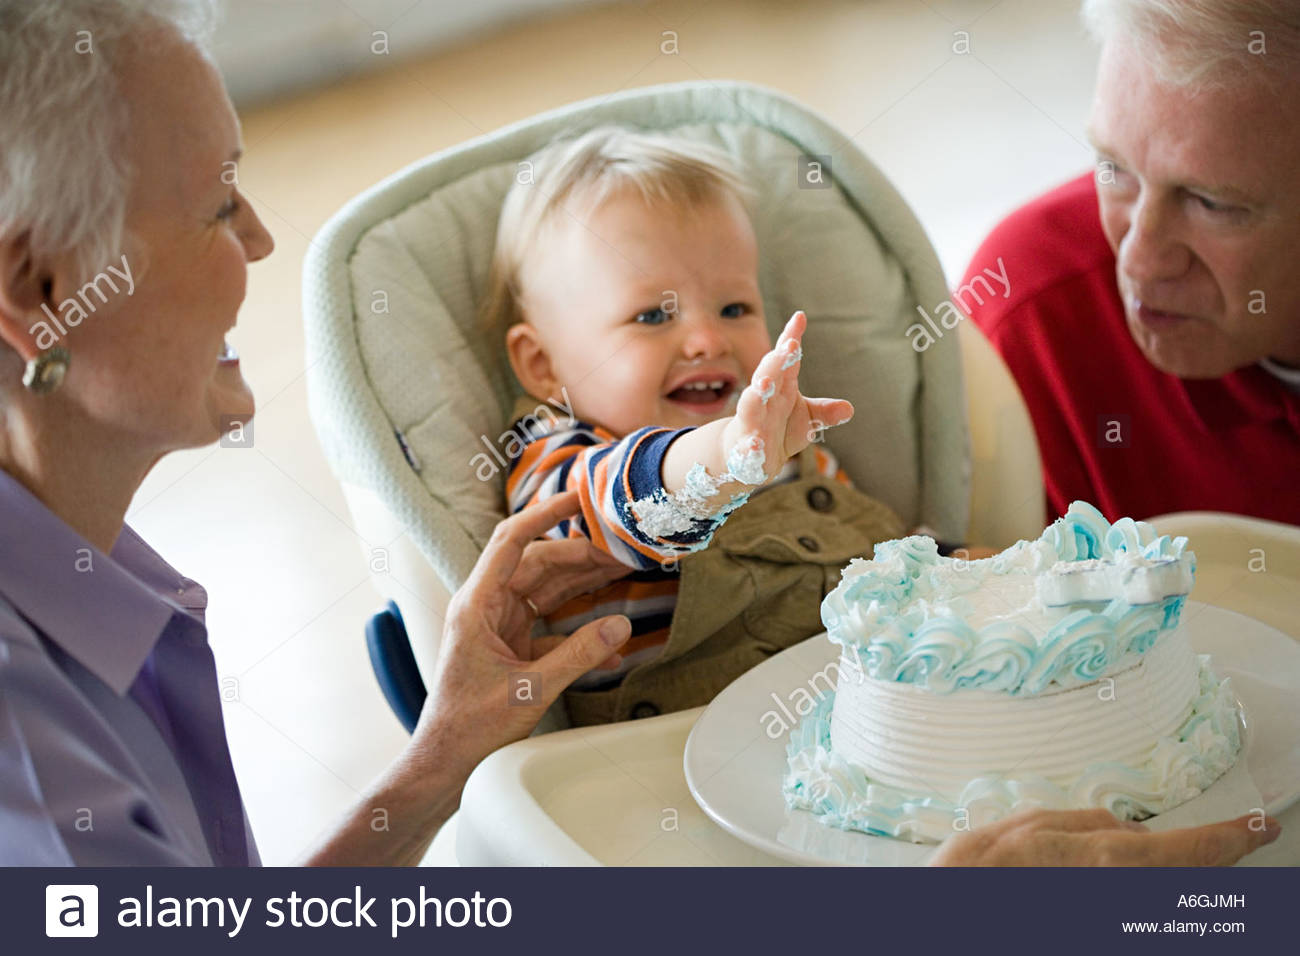 Grandparents and messy baby with cake - Stock Image